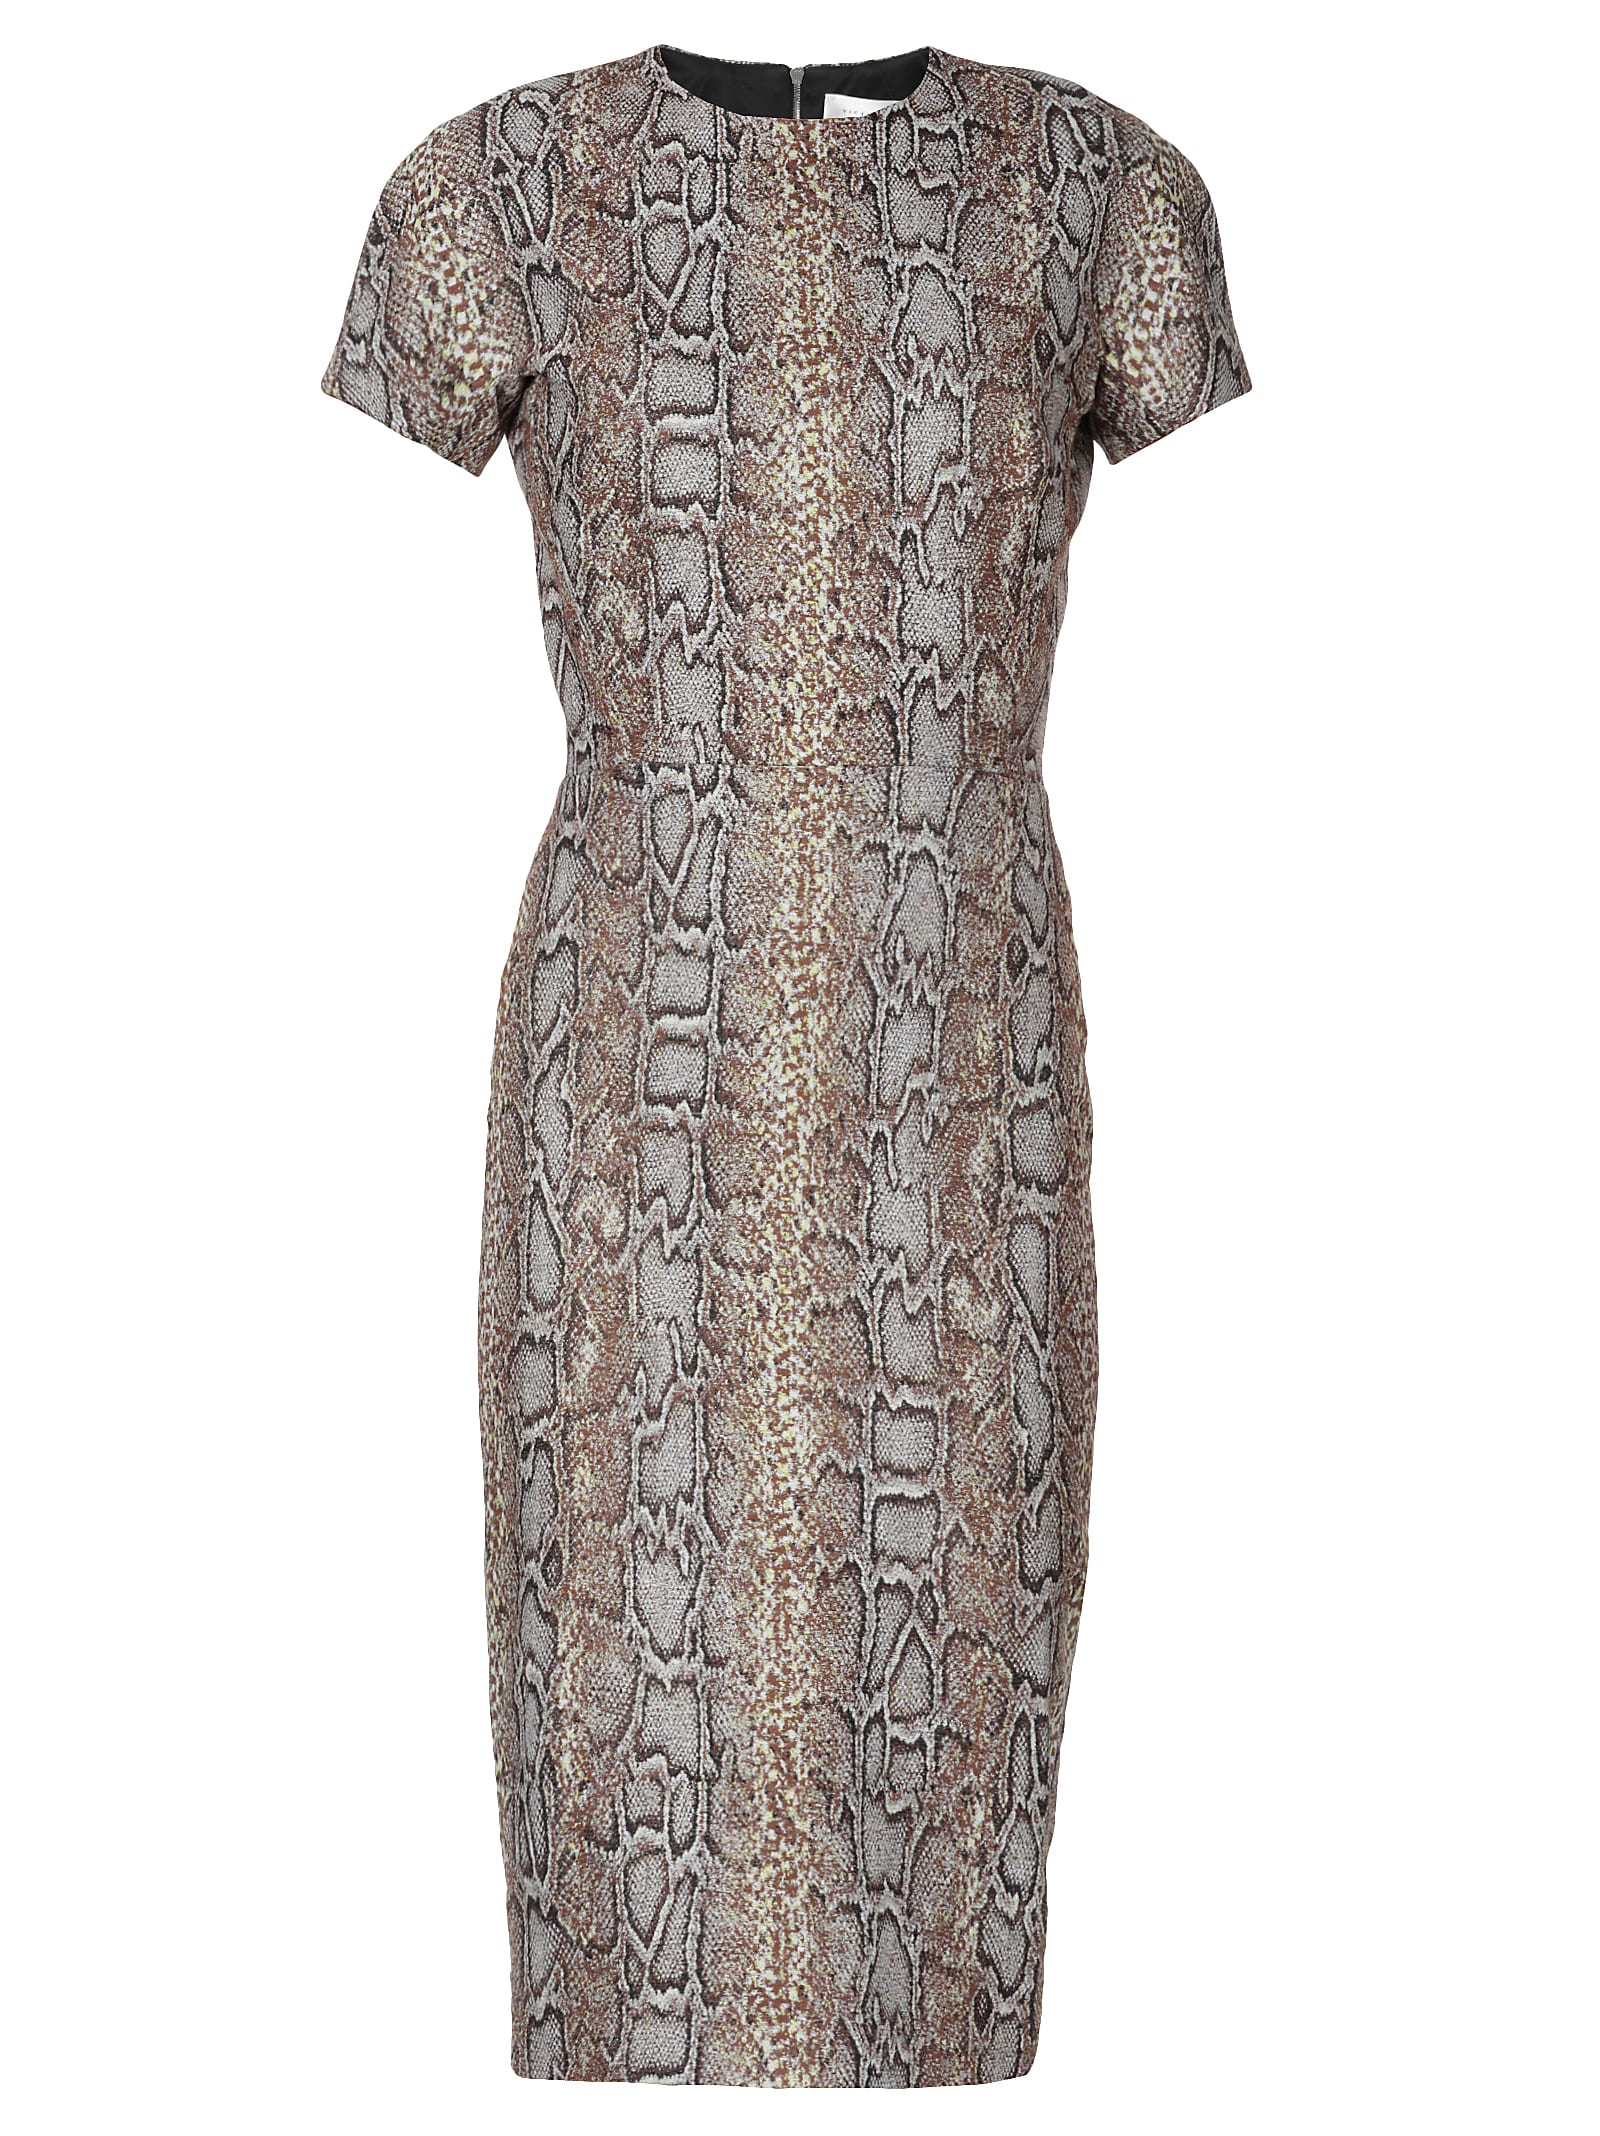 Victoria Beckham Animalier Dress